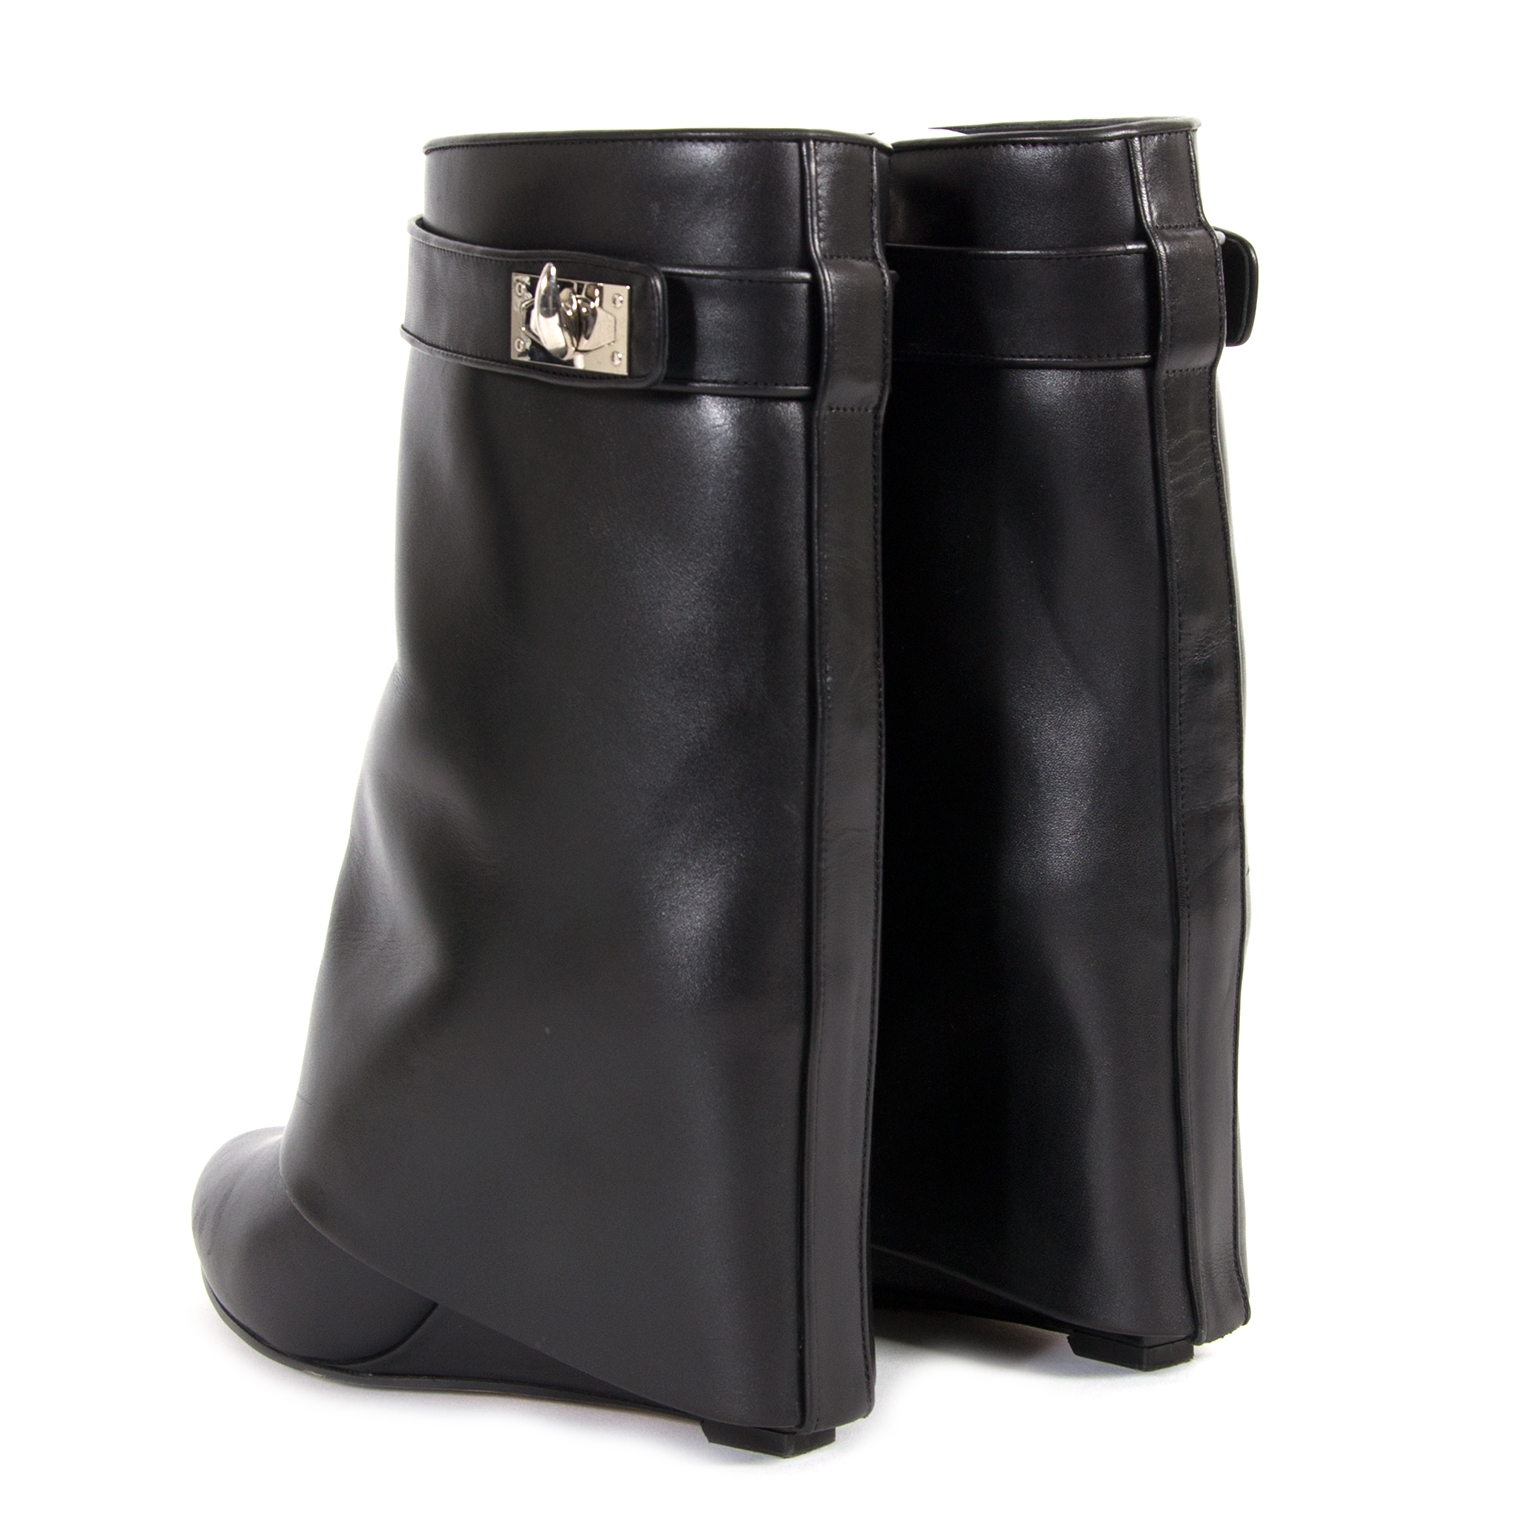 Are you interested in an authentic pair of Givenchy Black Shark Lock Boots?